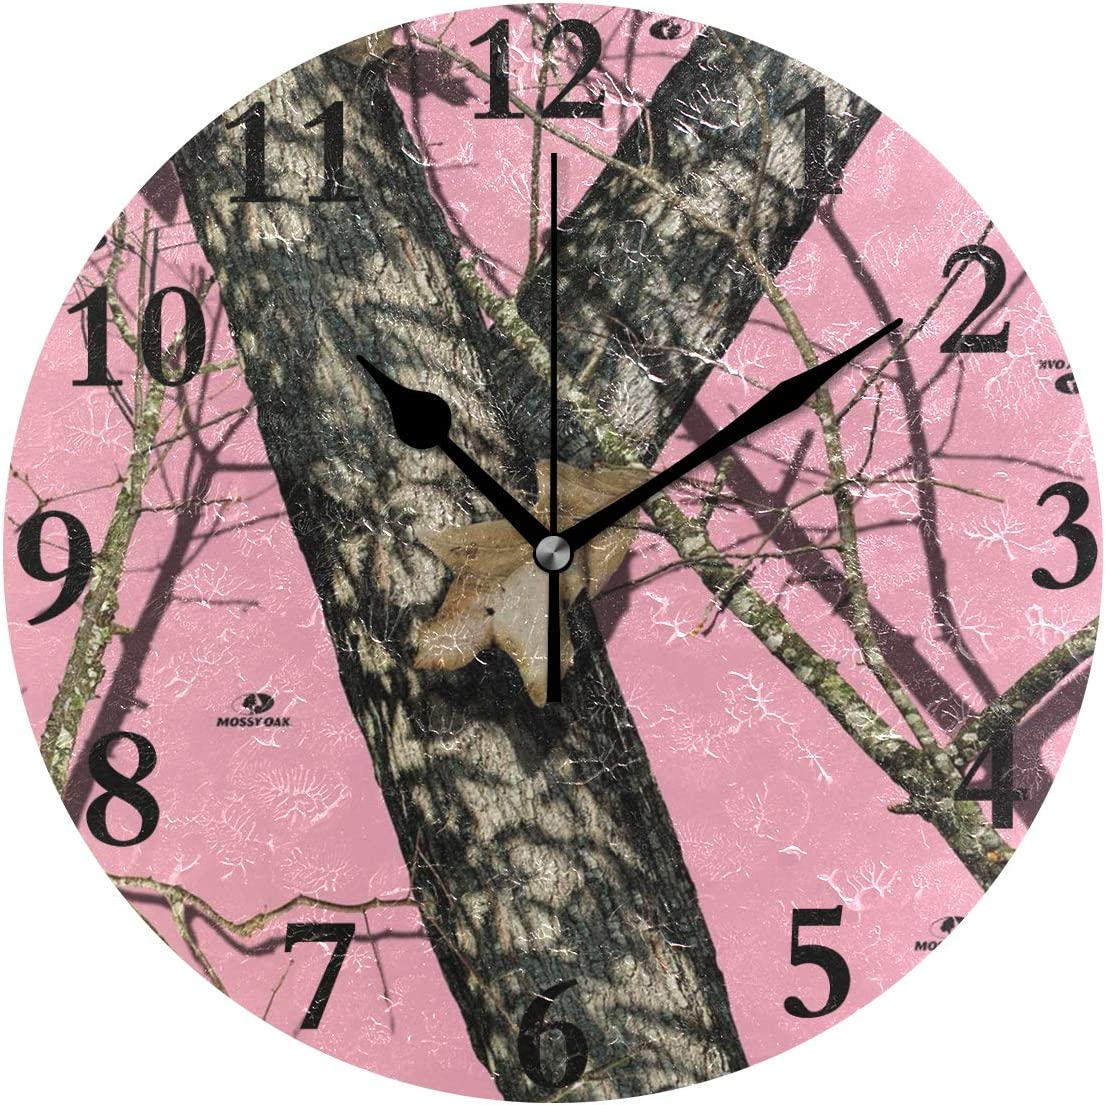 NMCEO Round Wall Clocks, Mossy Oak Pink Camo Wall Clocks Battery Operated, Wall Clock Silent Modern Decorative for Kids 9.8 Inch